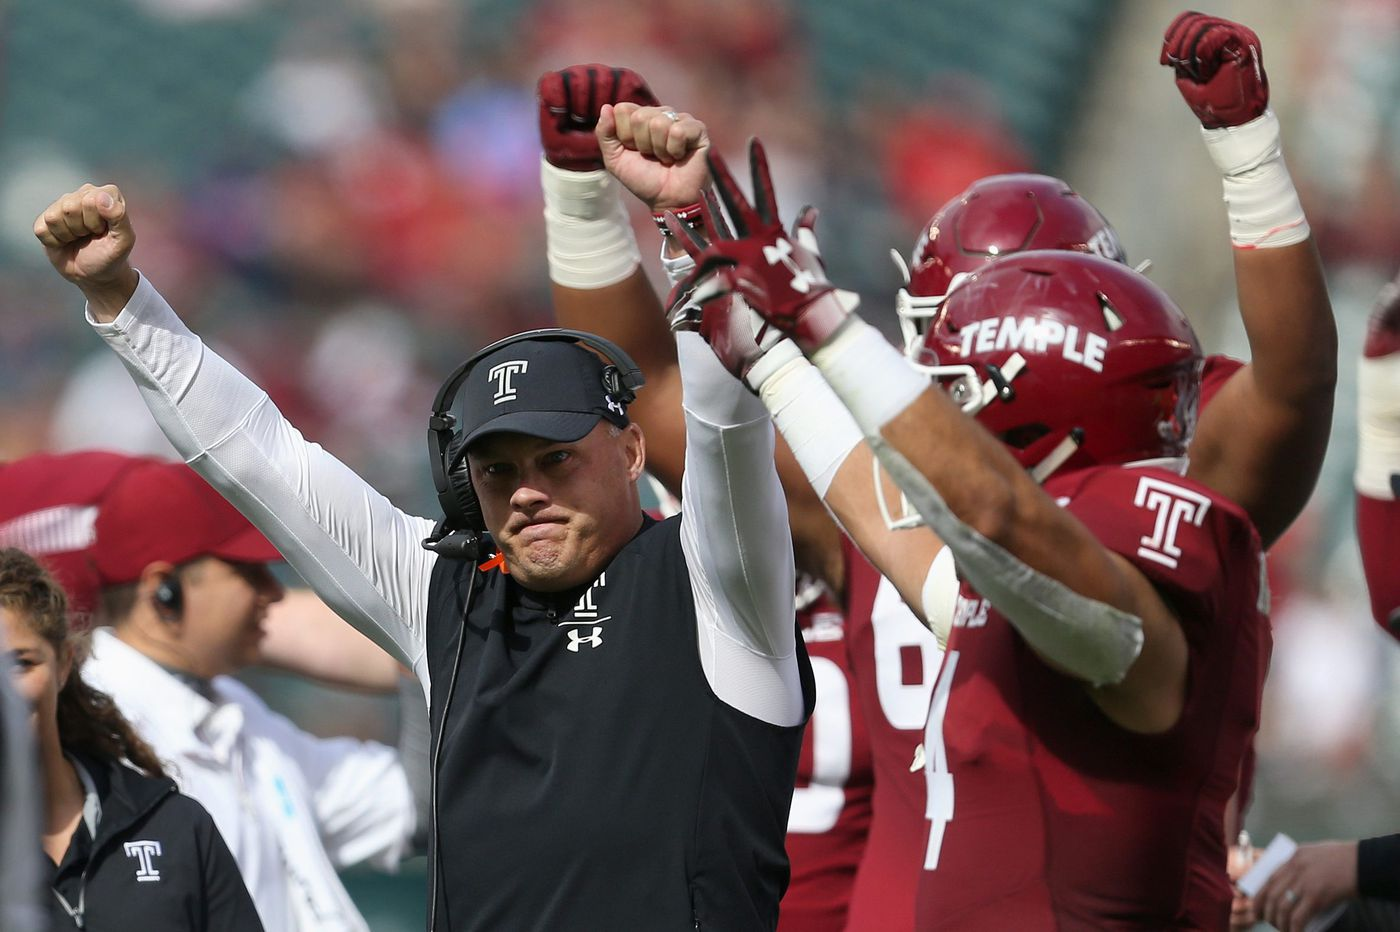 The Temple Owls, not the Eagles, are the one hot football team at the Linc | Mike Jensen